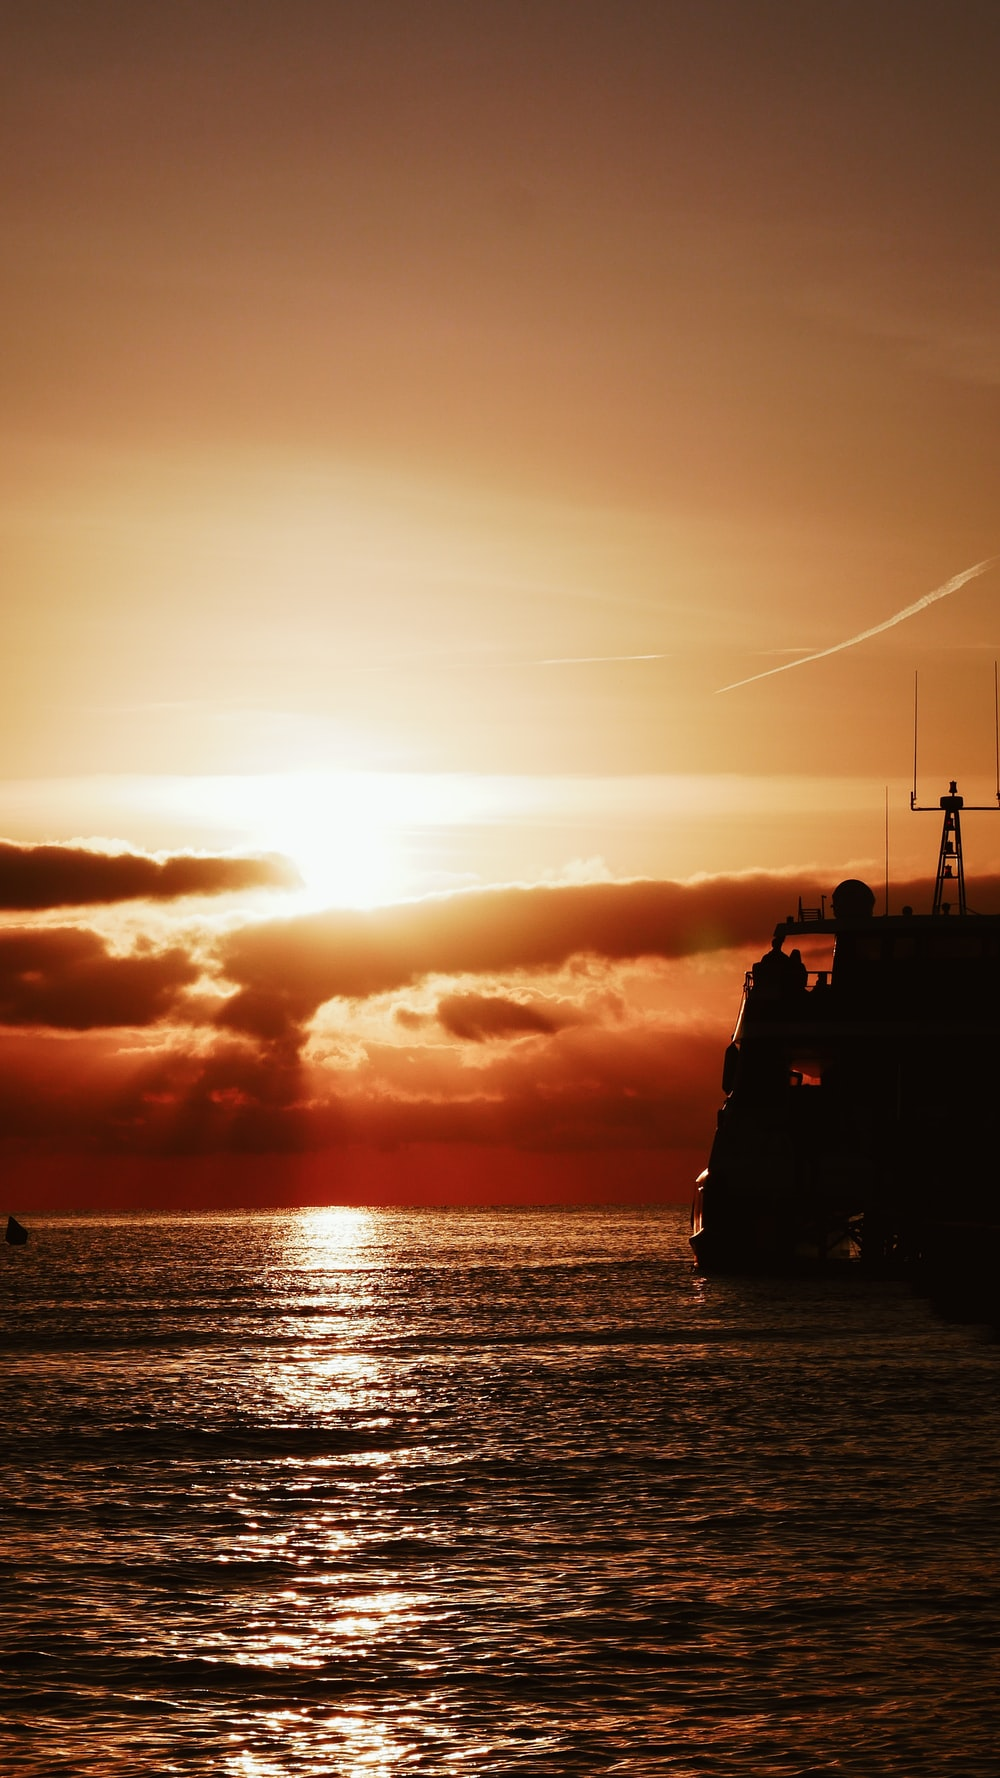 ship floating at the ocean during golden hour